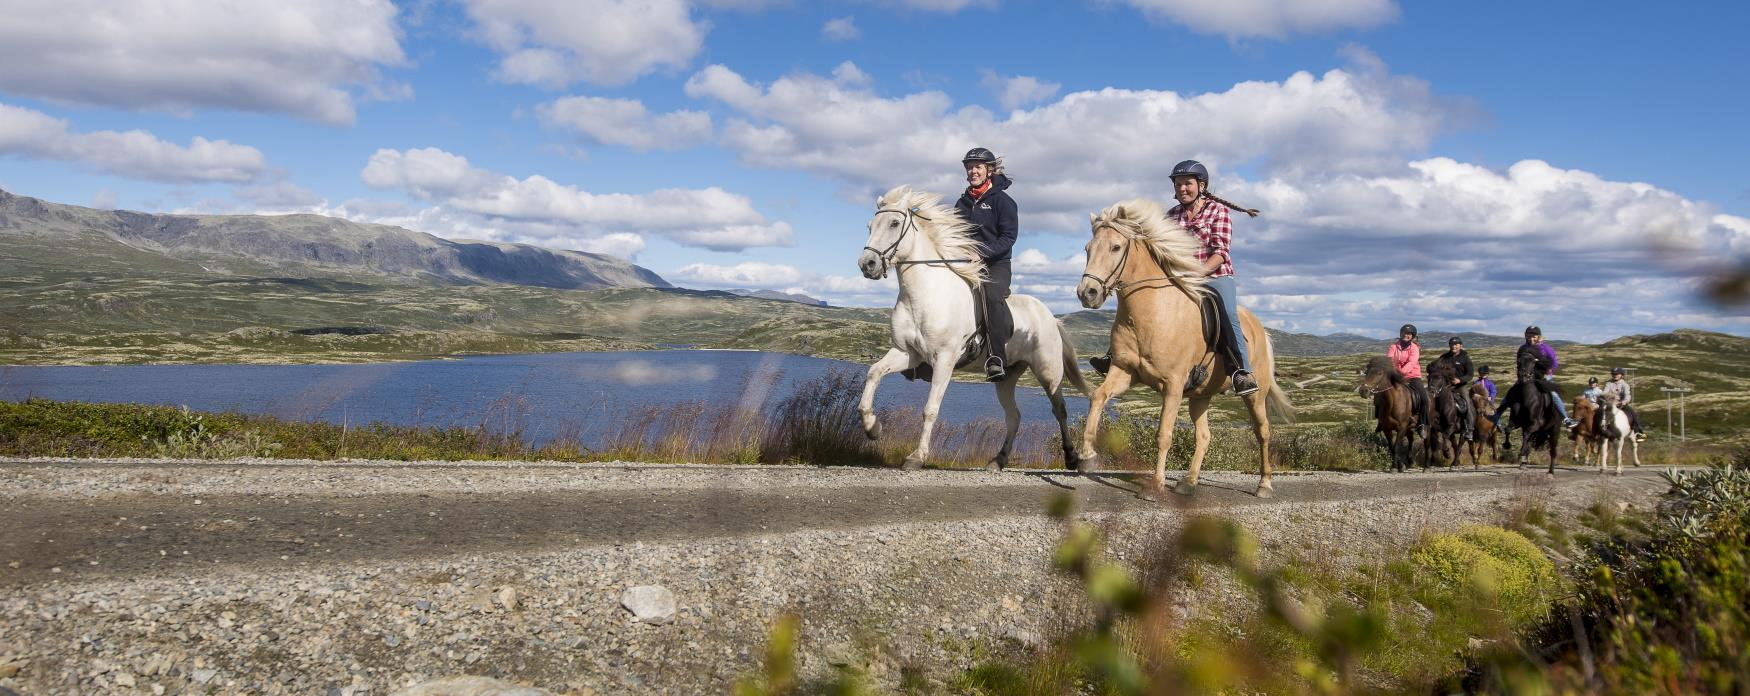 Family riding in Ål